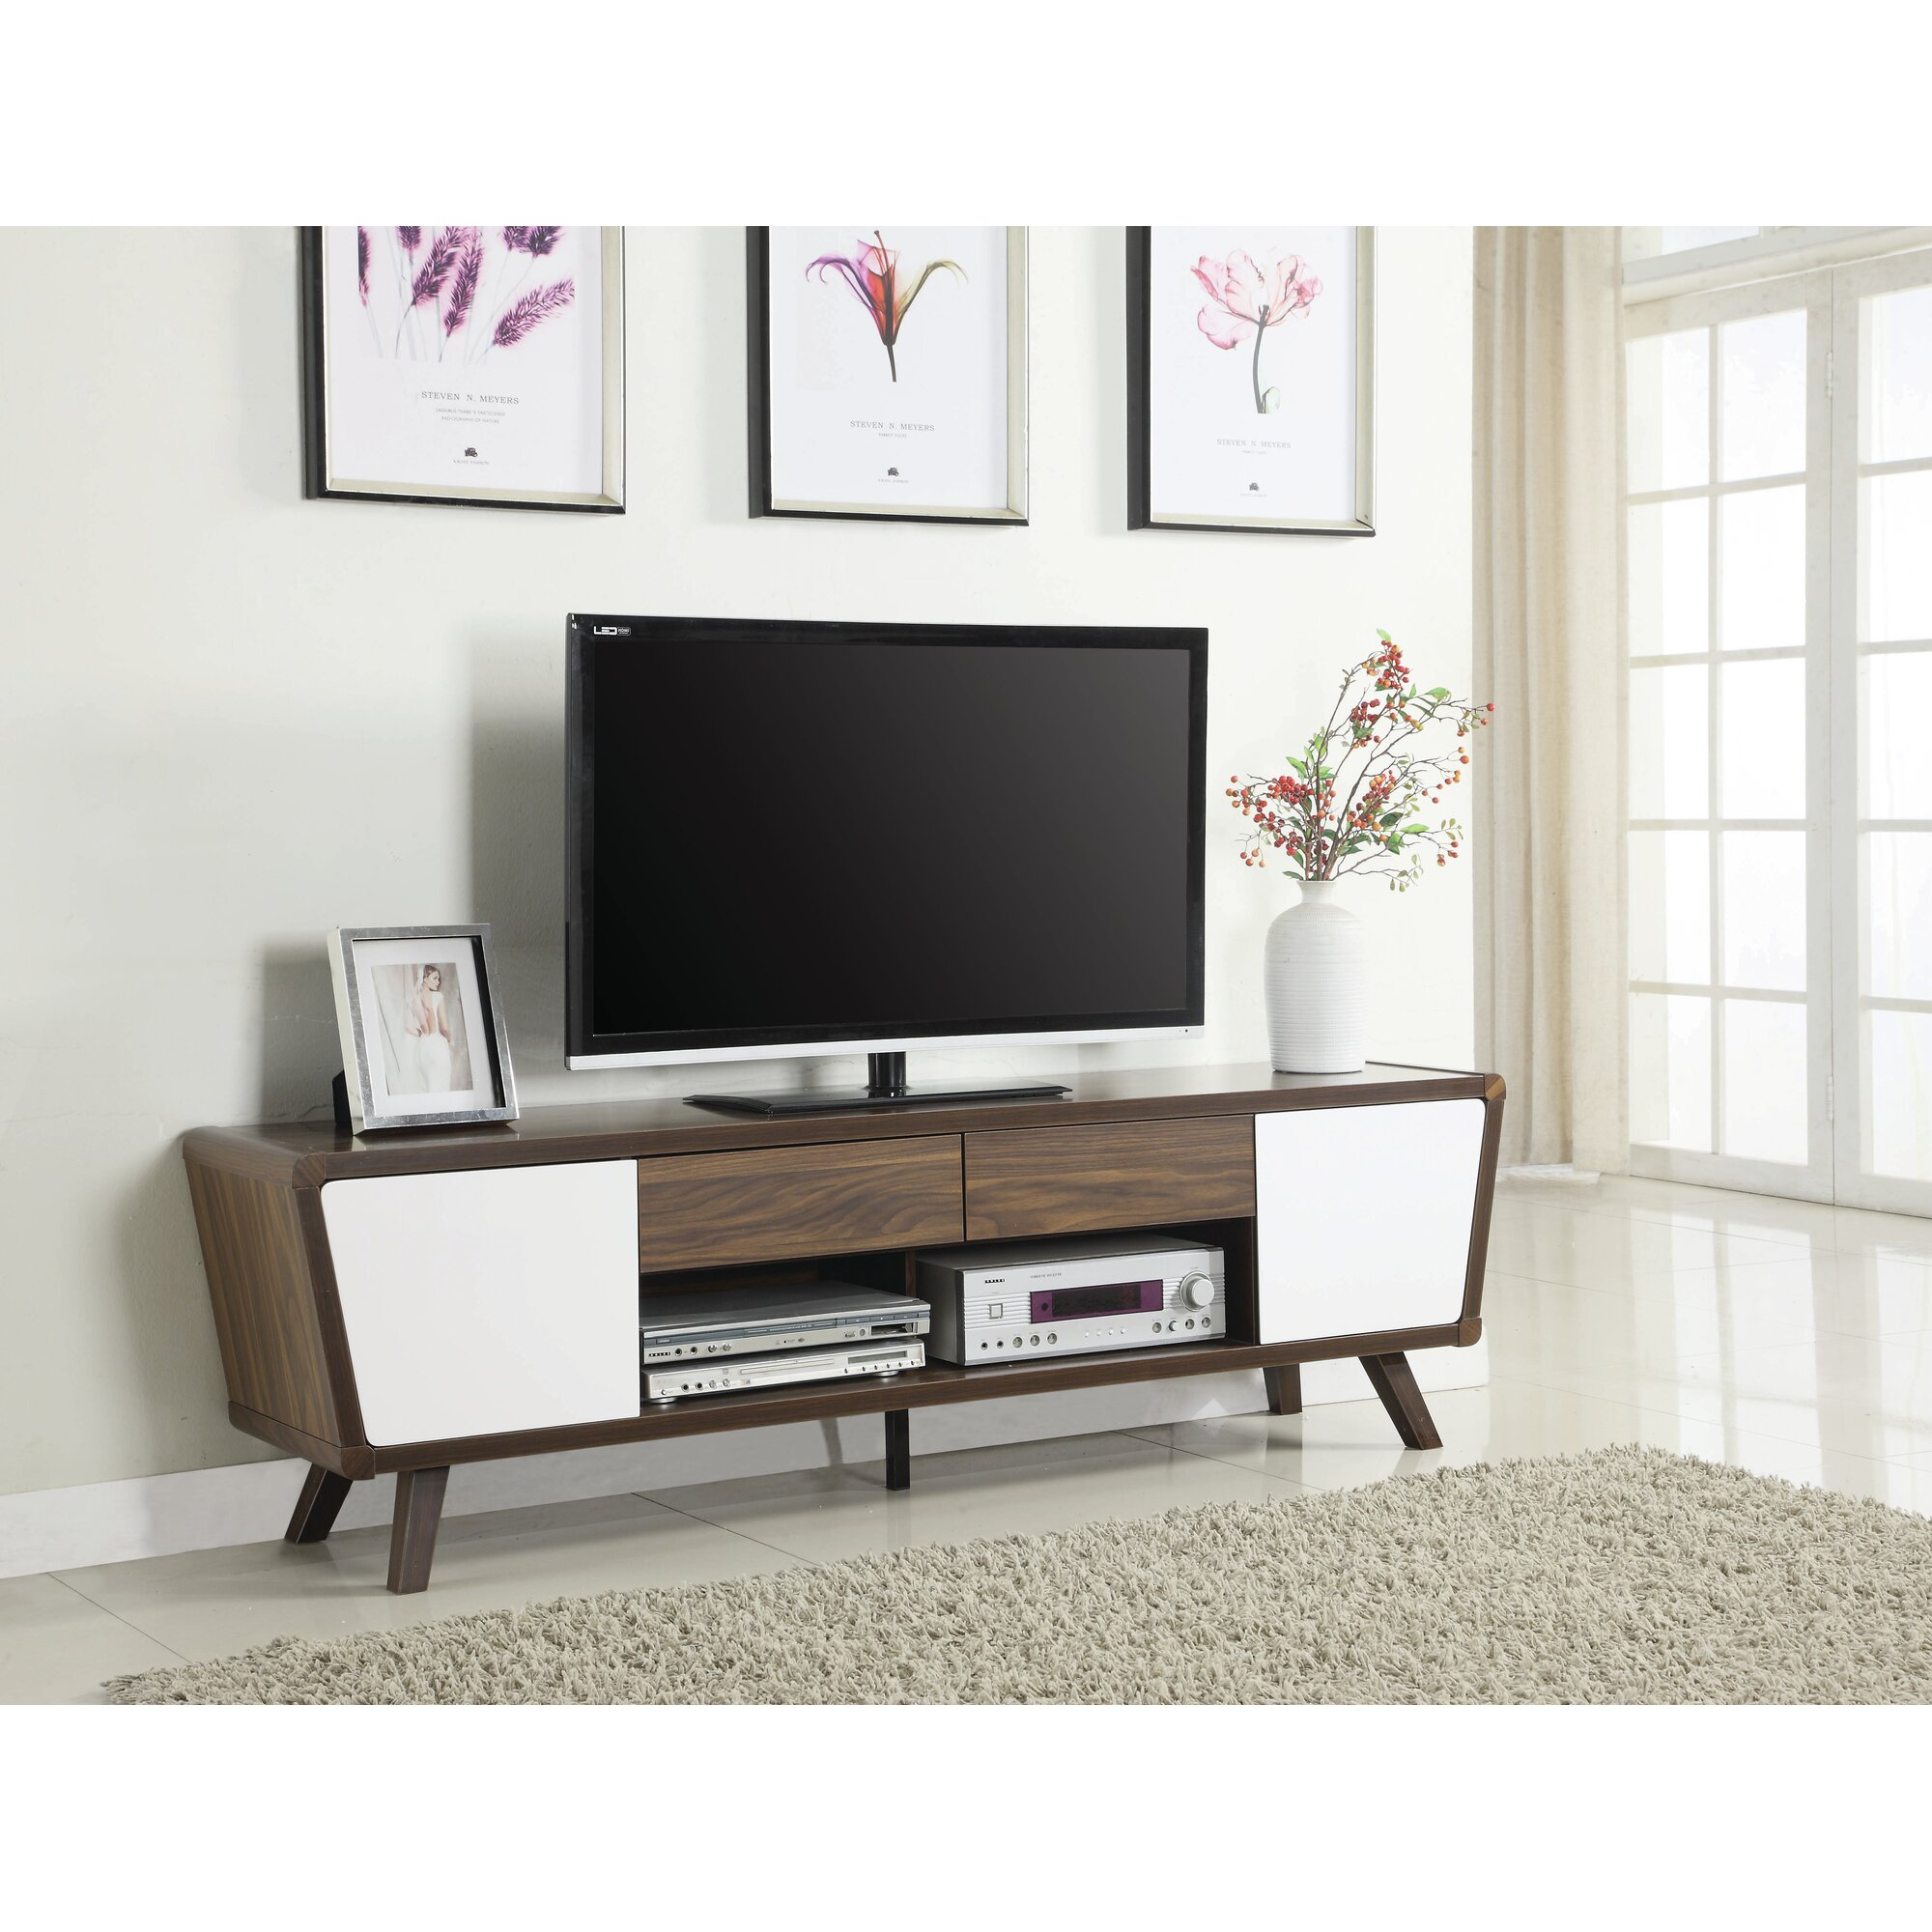 Modern Tv Stand Great Tv Stand Living Room Furniture Black White